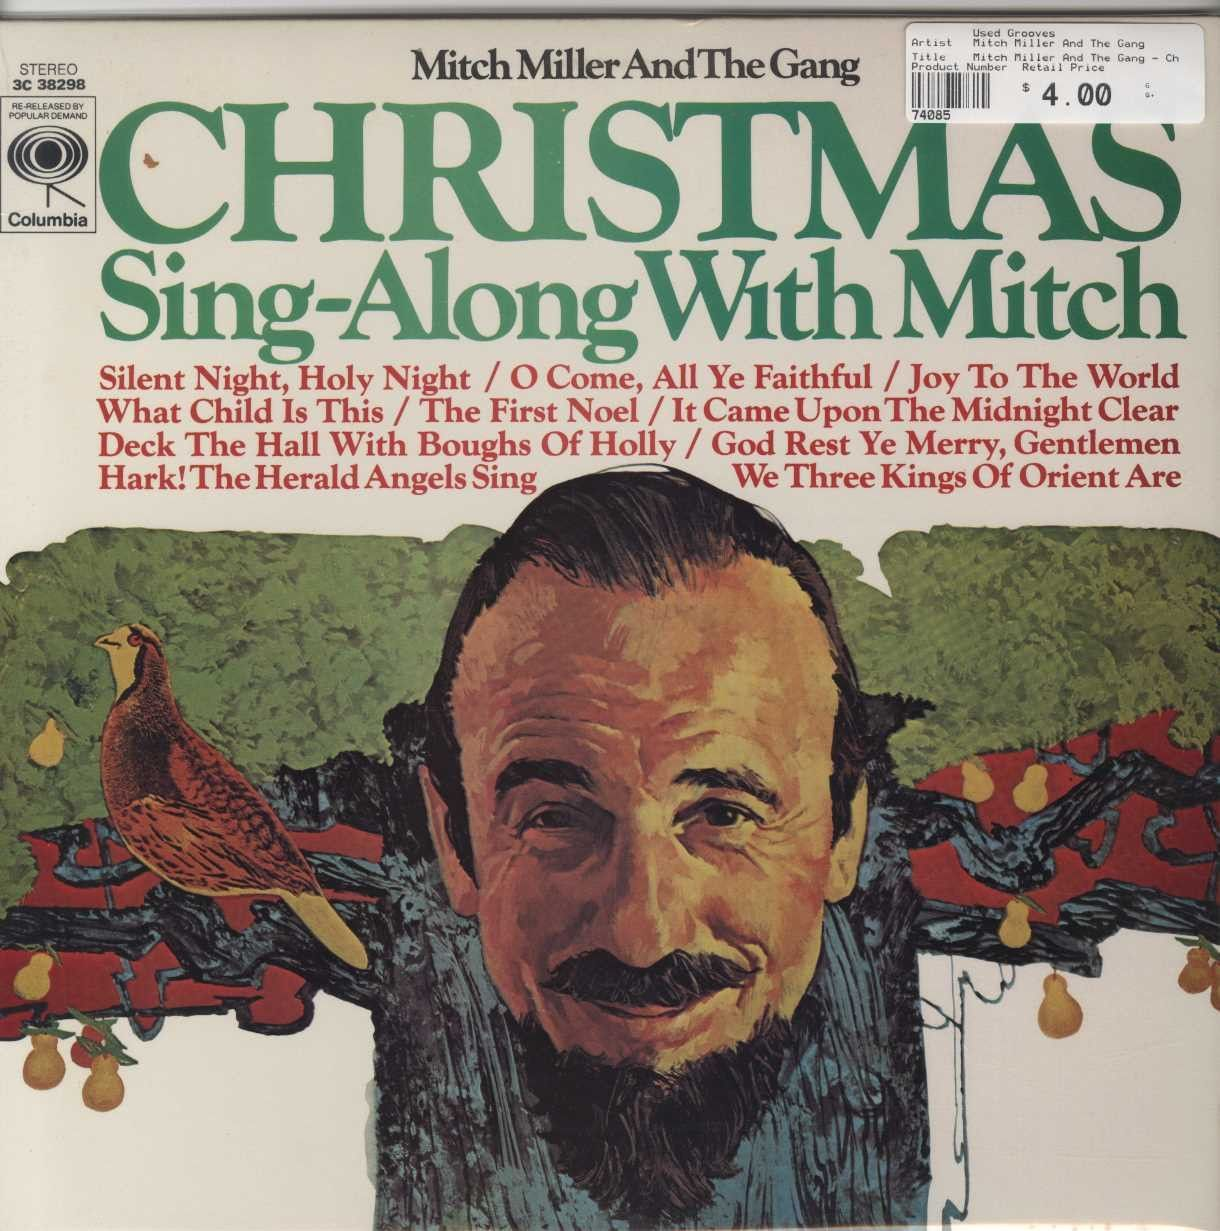 mitch miller and the gang christmas sing along with mitch